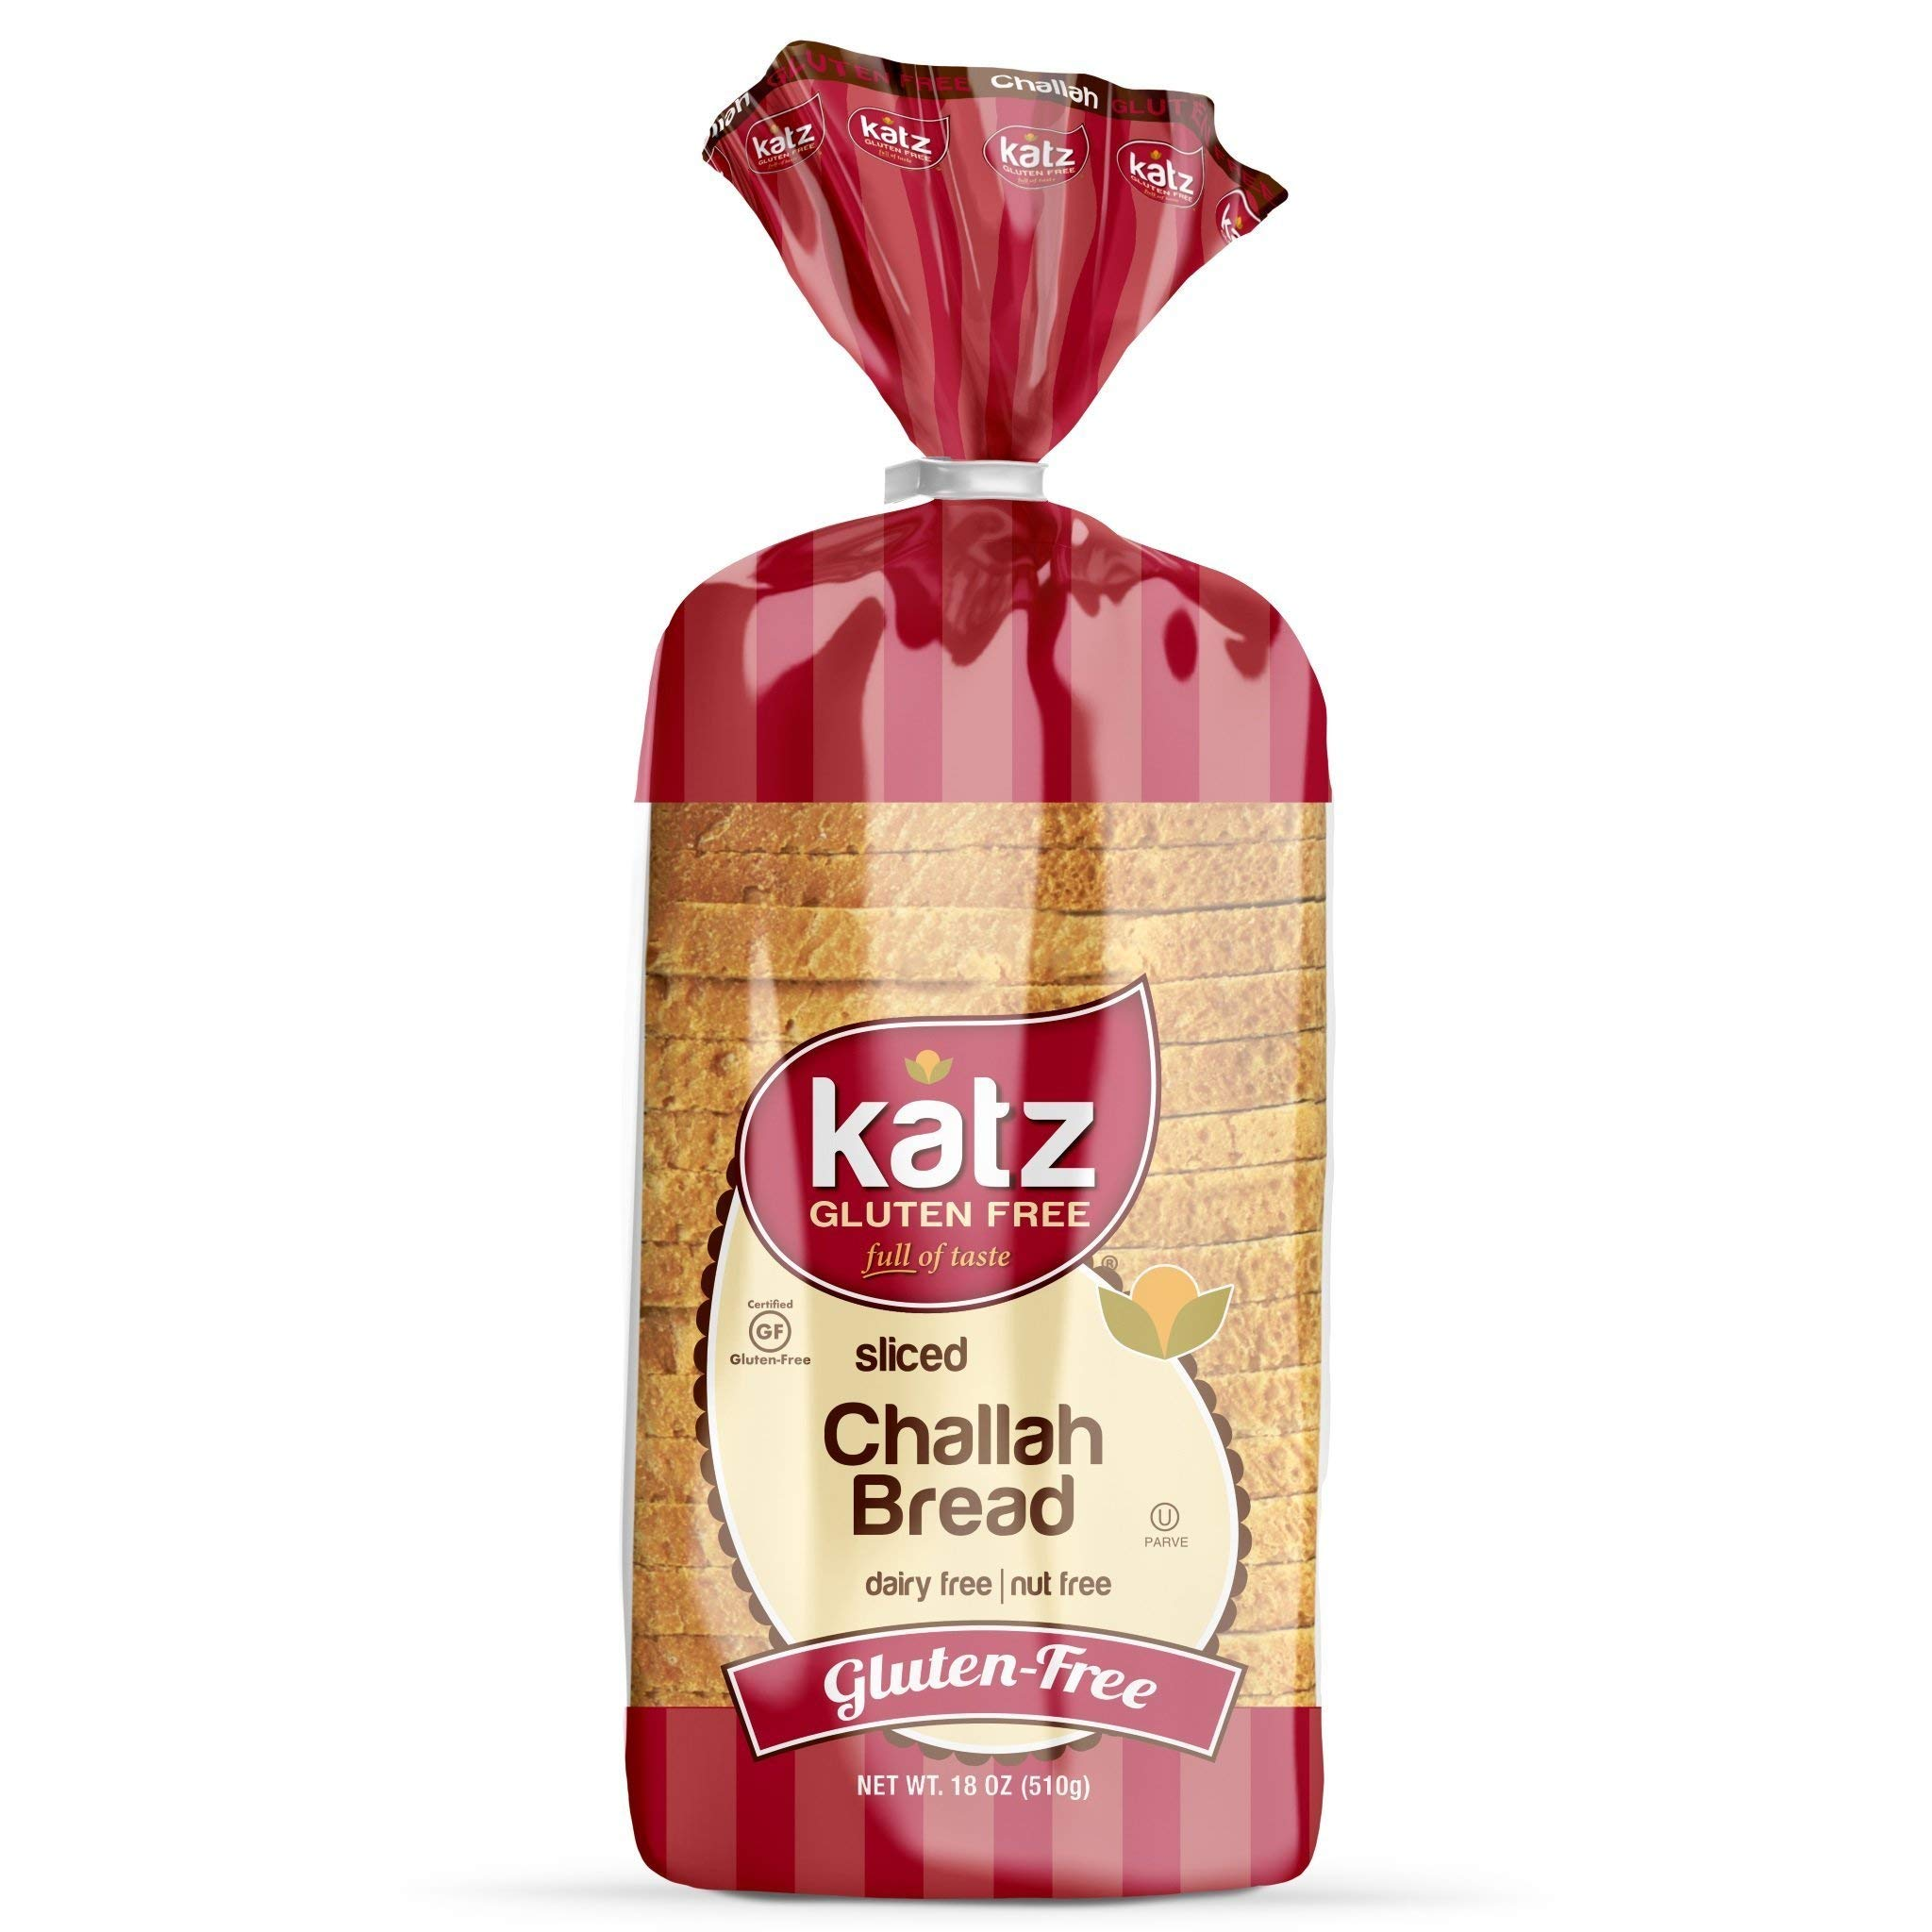 Katz Gluten Free Sliced Challah Bread | Dairy, Nut and Gluten Free | Kosher (6 Packs of 1 Sliced Loaf, 18 Ounce Each) by Katz Gluten Free